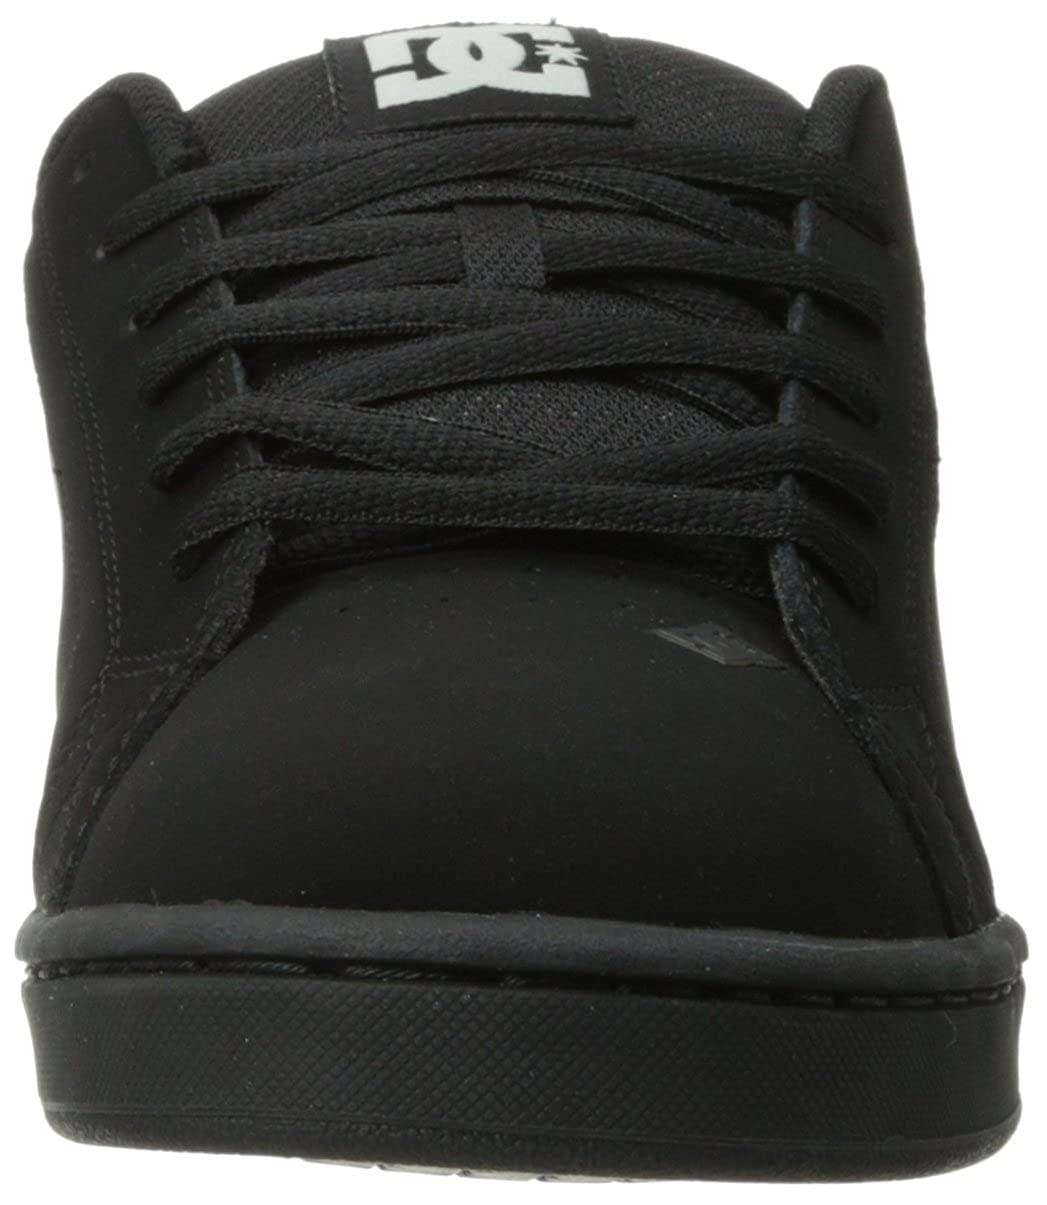 DC Net SE-M - Zapatillas de Skateboarding para Hombre, Color Black, Talla 38: Amazon.es: Zapatos y complementos